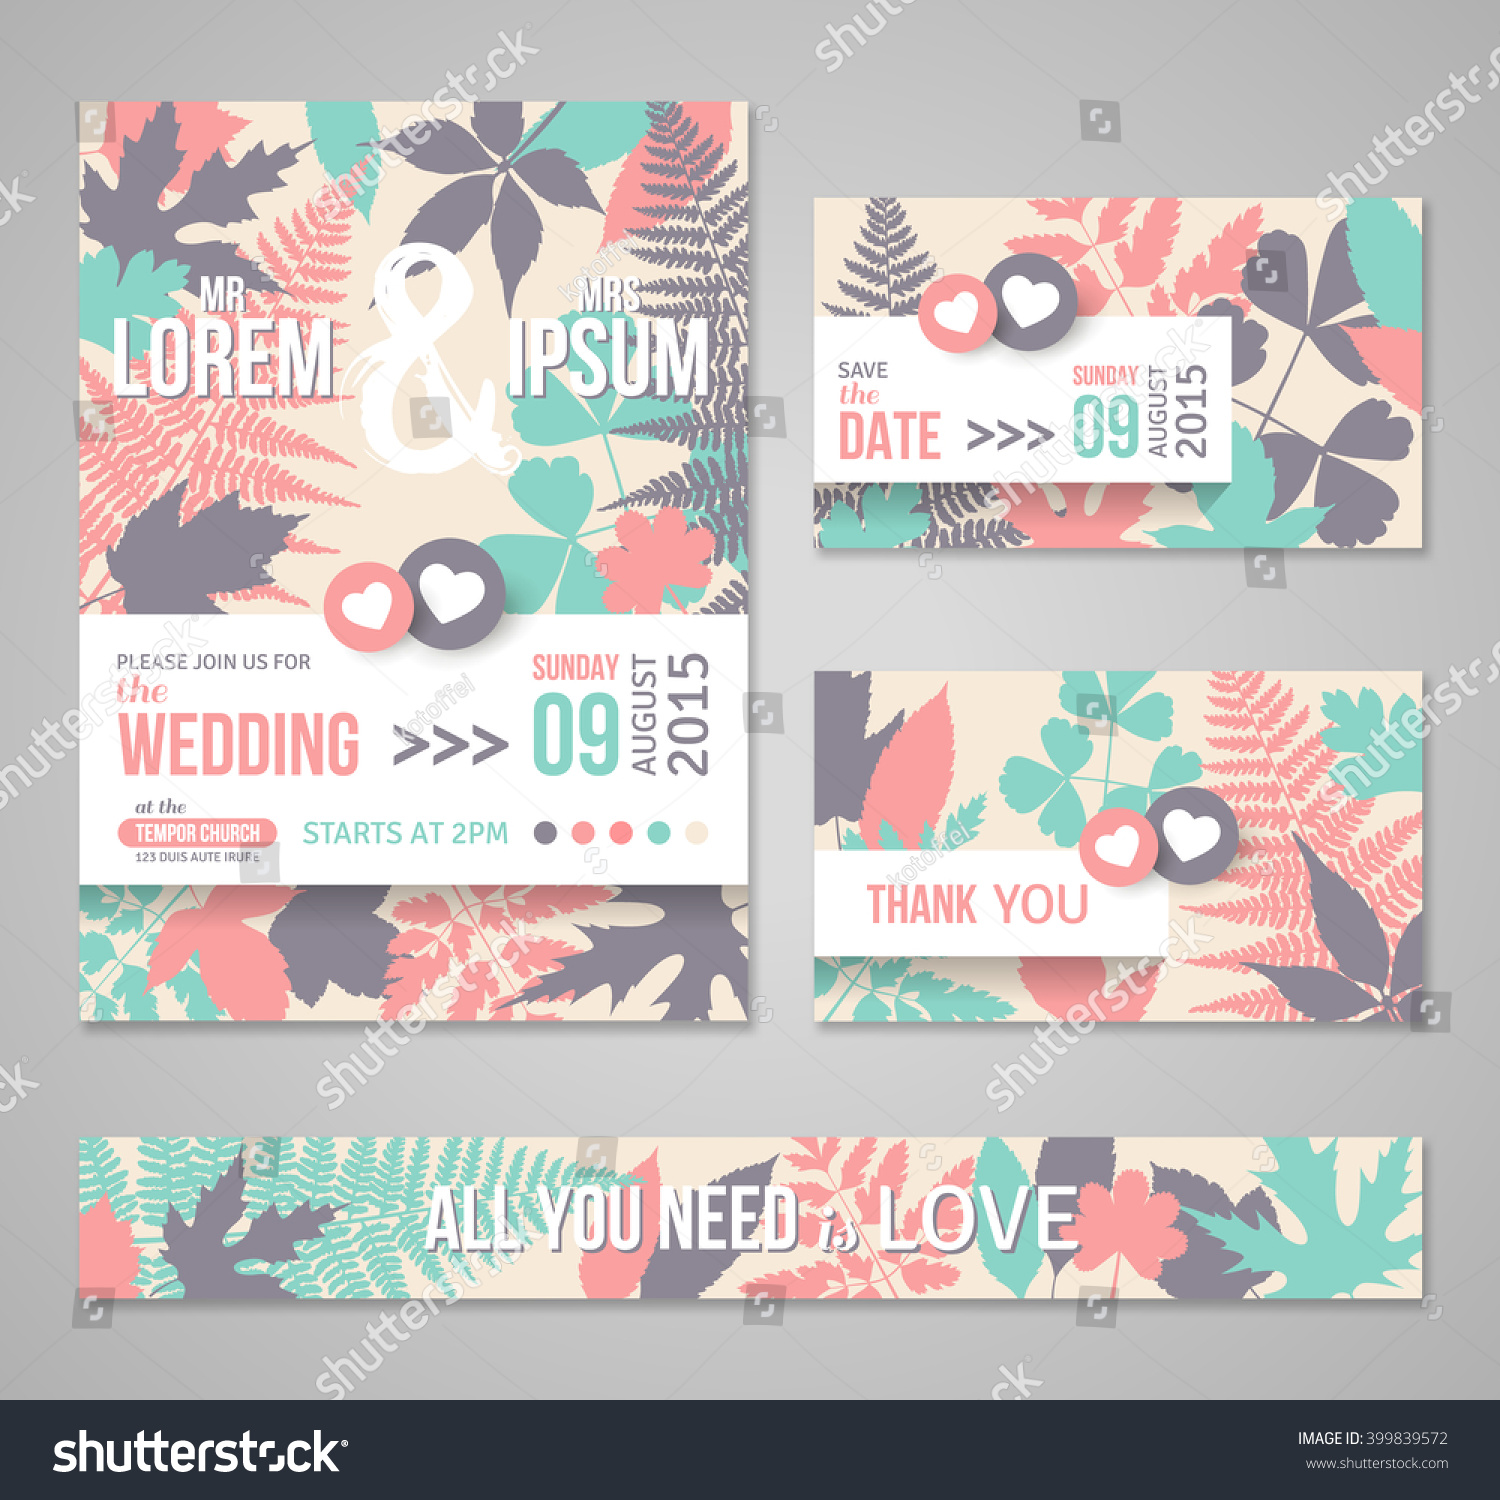 Retro Wedding Invitations Design Template With Forest Leaves, Branches.  Vector Illustration. Decorative Floral